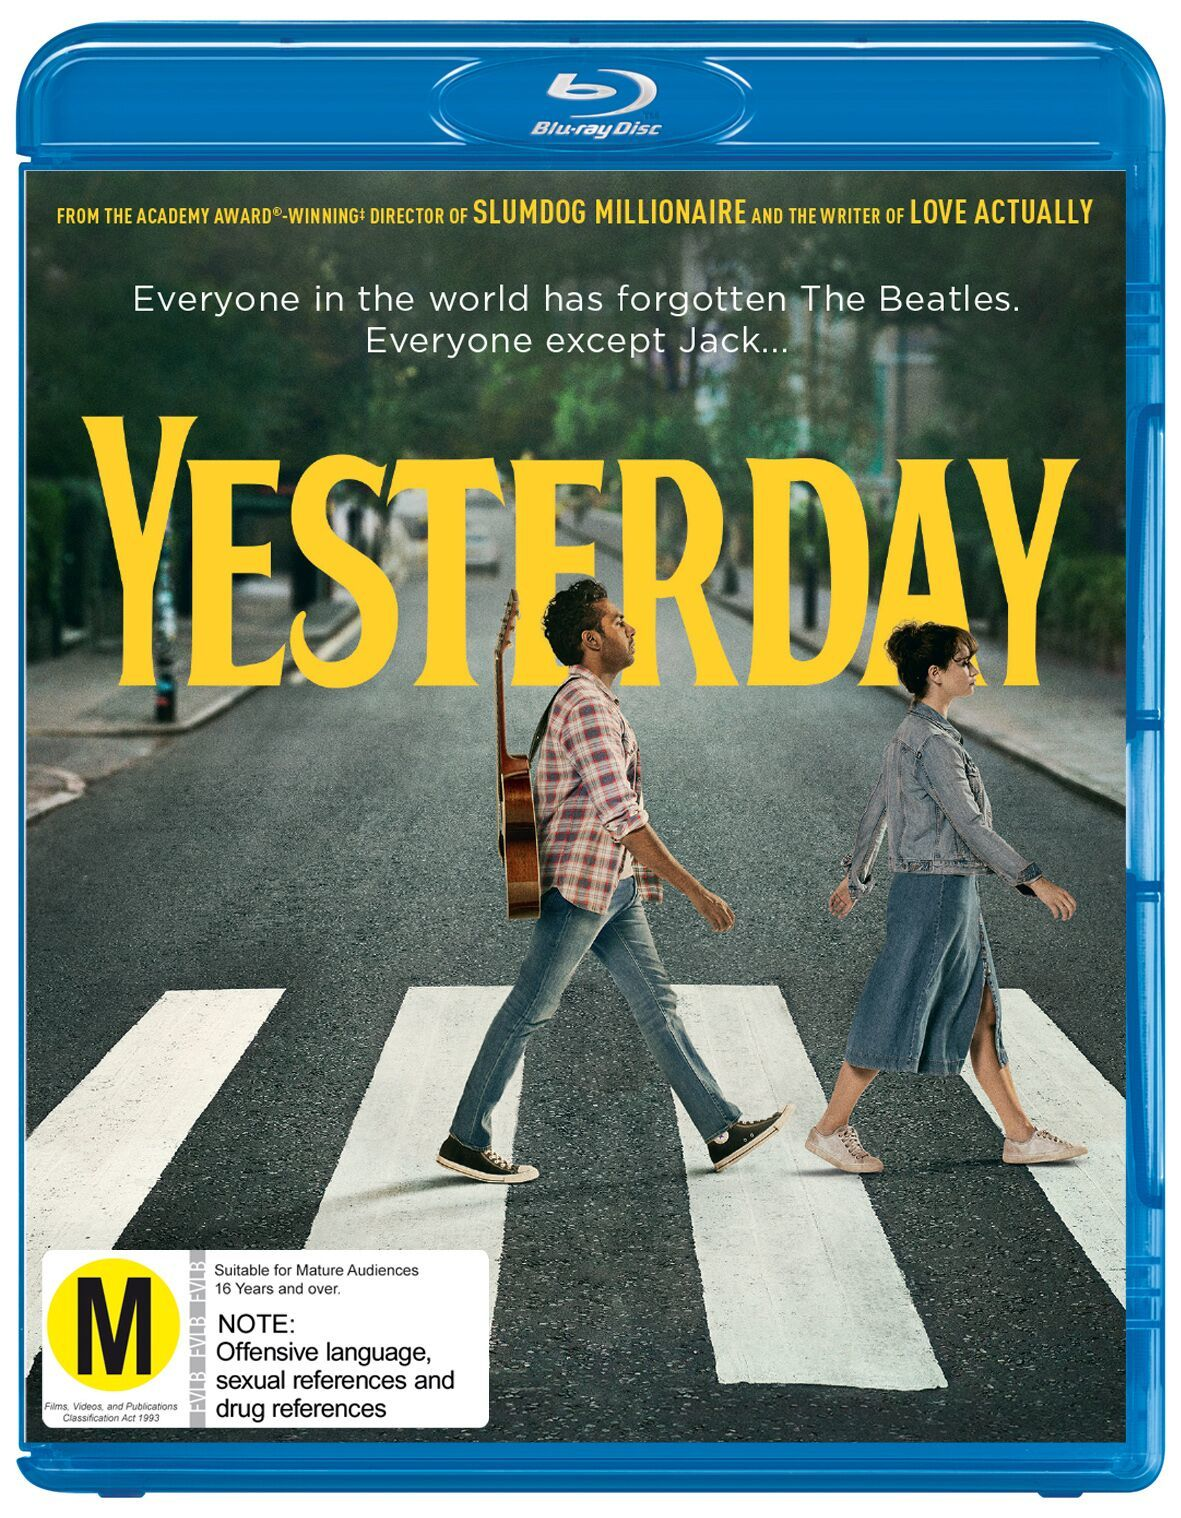 Yesterday on Blu-ray image